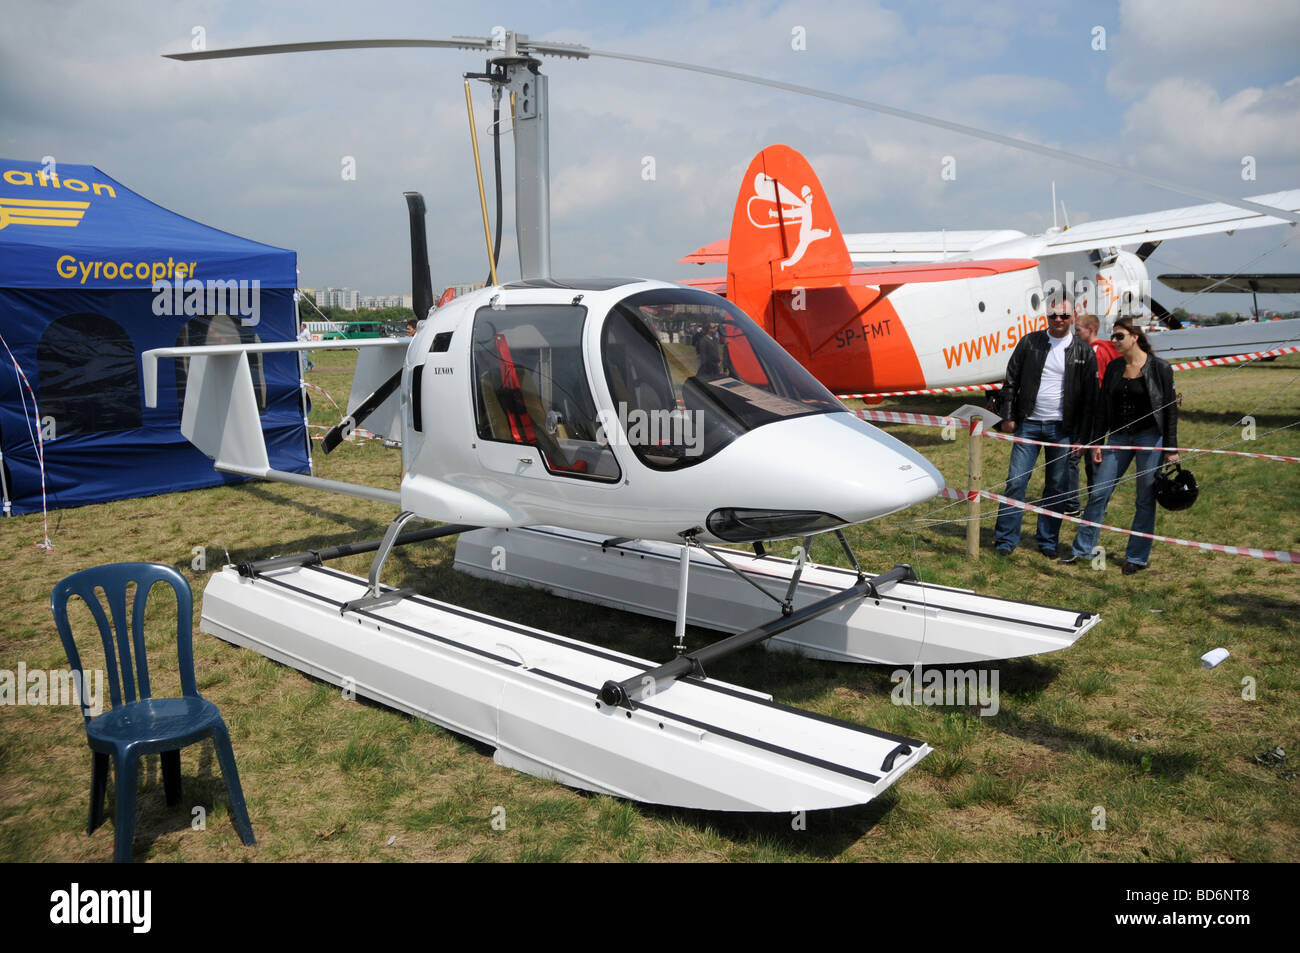 buy ultralight helicopter with Stock Photo Xenon 2 Model Of Autogyro Also Called Gyrocopter Or Gyroplane 25349752 on Piper J3 Cub further Drone With Hd Camera And Gps 60656852697 additionally Europa Motorglider Tmg as well Airscooter Ii Ultralight Helicopter additionally Parrot.